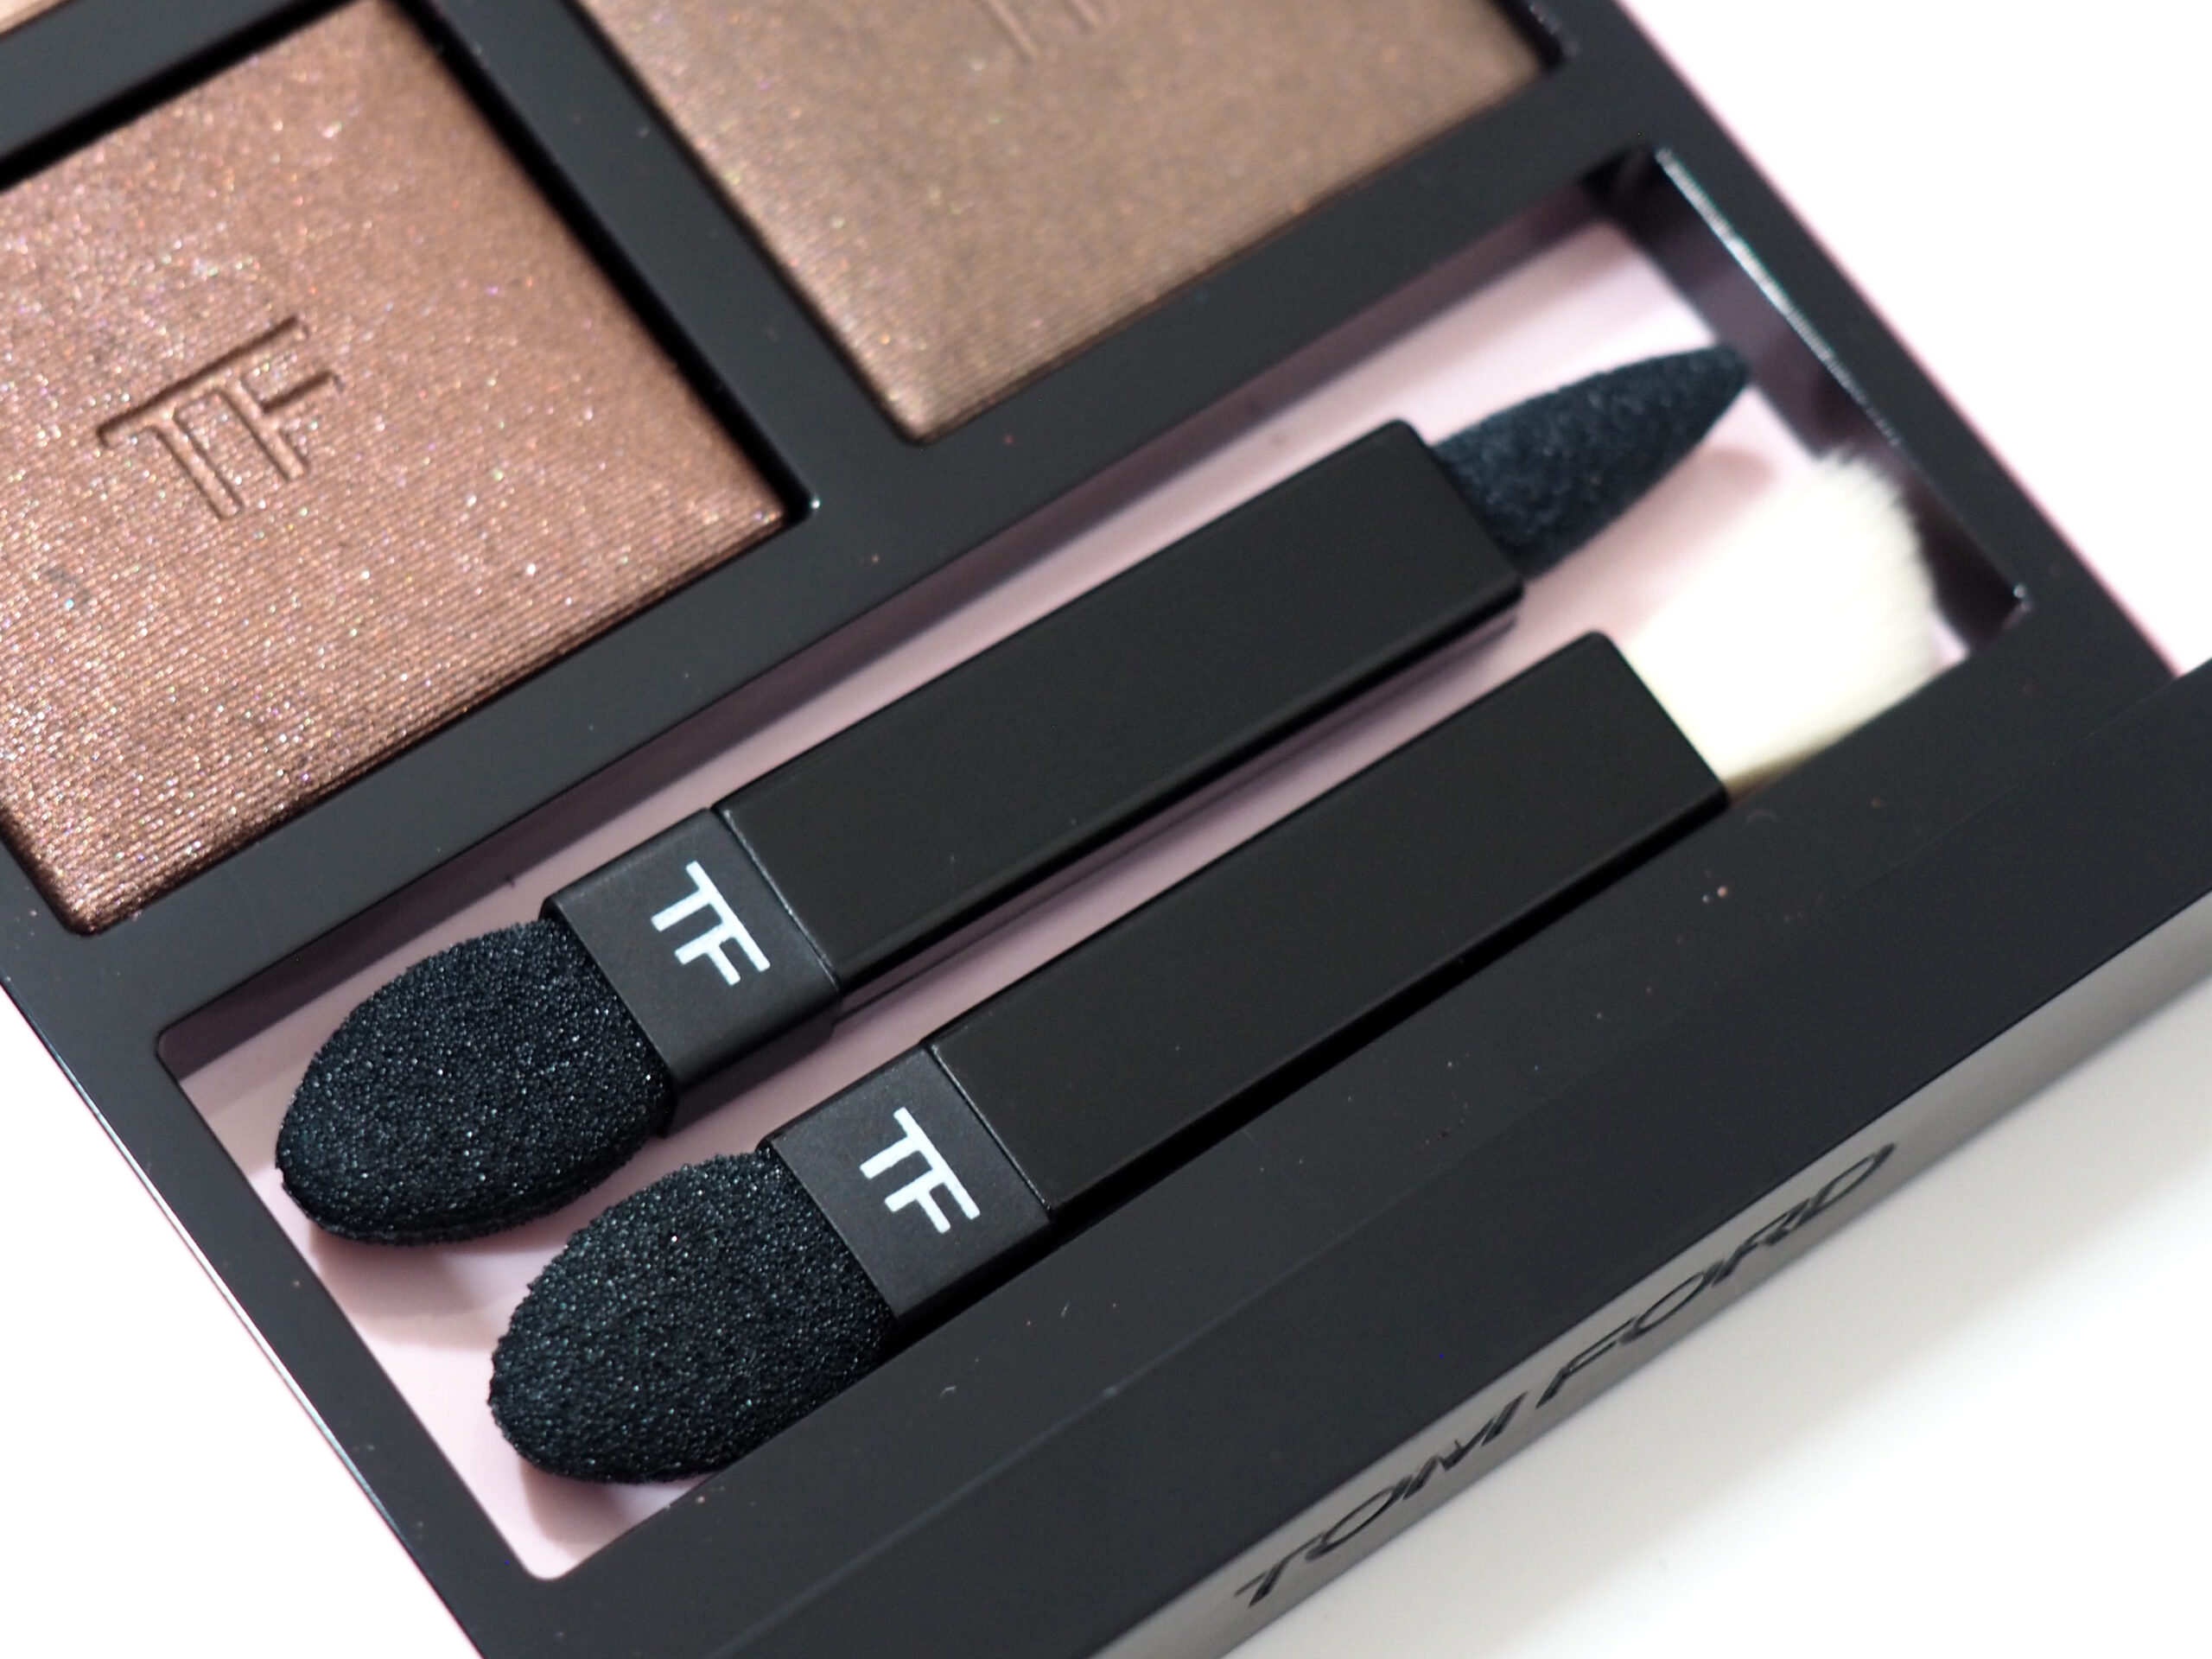 Tom Ford Rose Prick Body Heat Eye Color Quad Review / Swatches